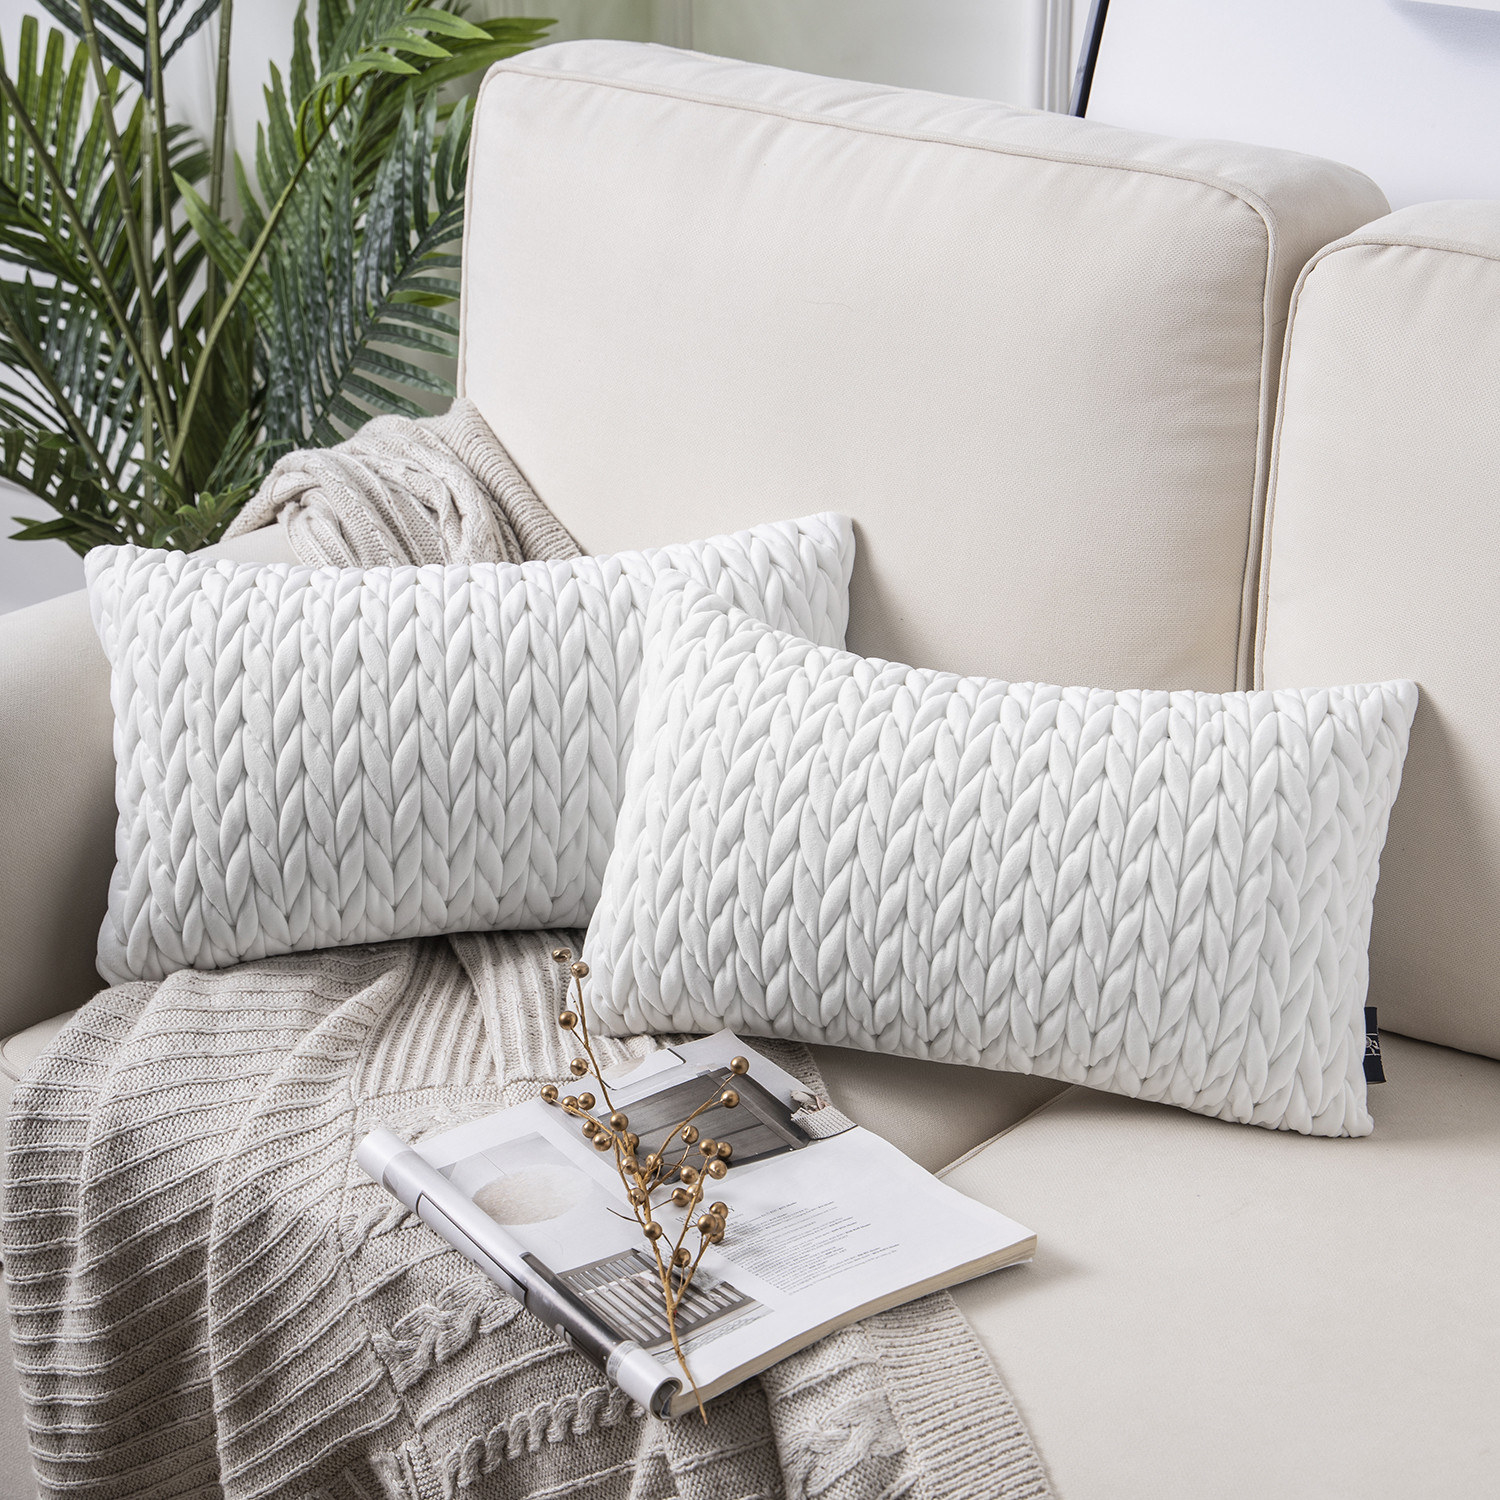 Set of quilted velvet throw pillows in white